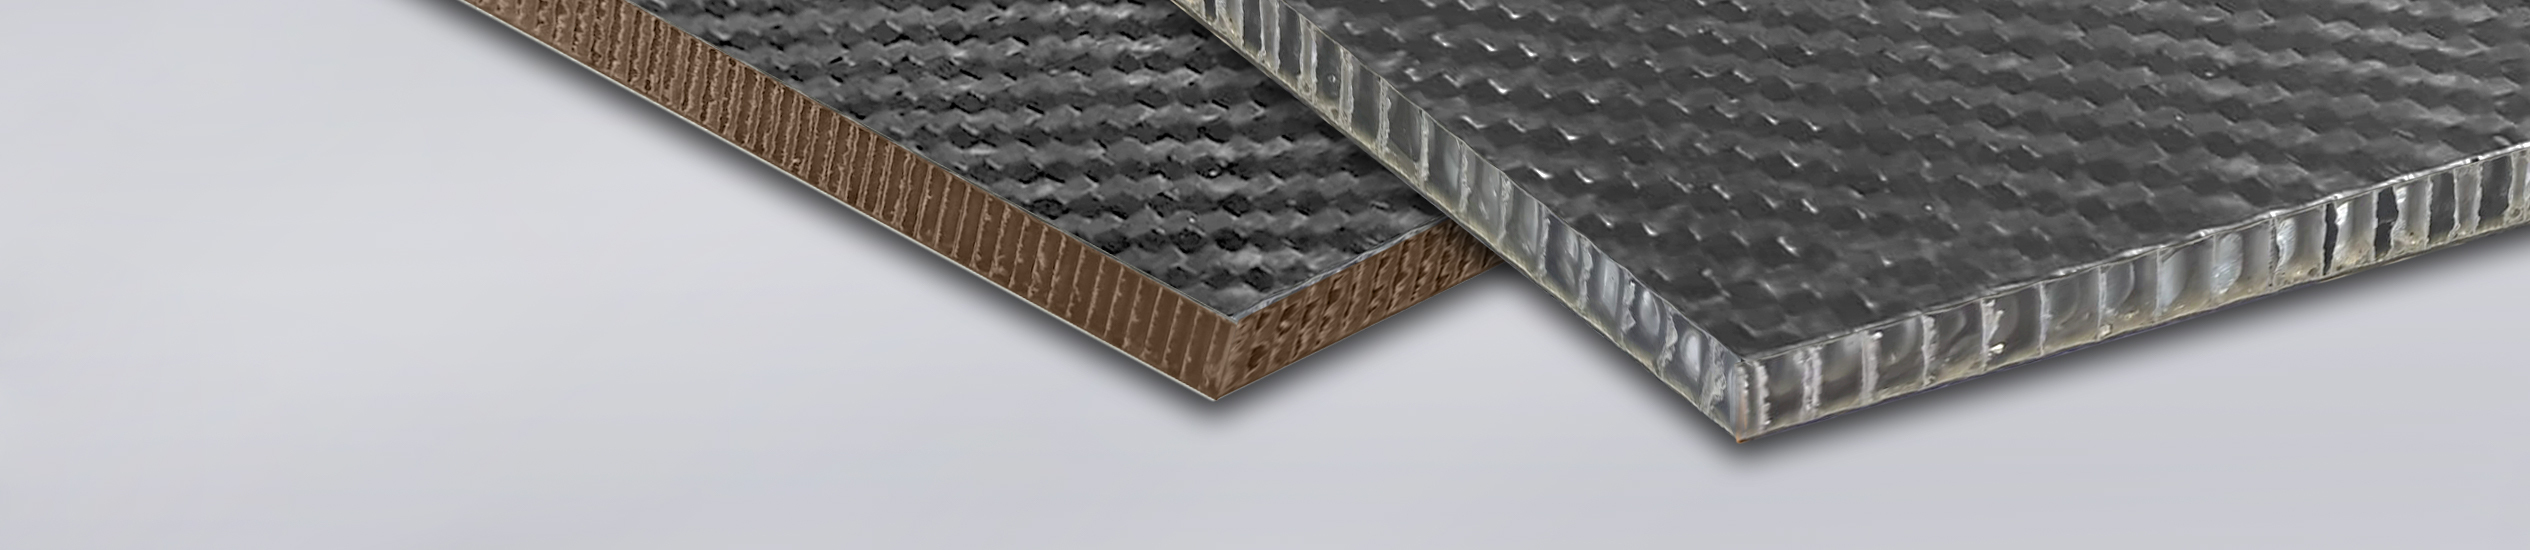 Carbonstep is a sandwich panel with skins in bidirectional carbon fabric.